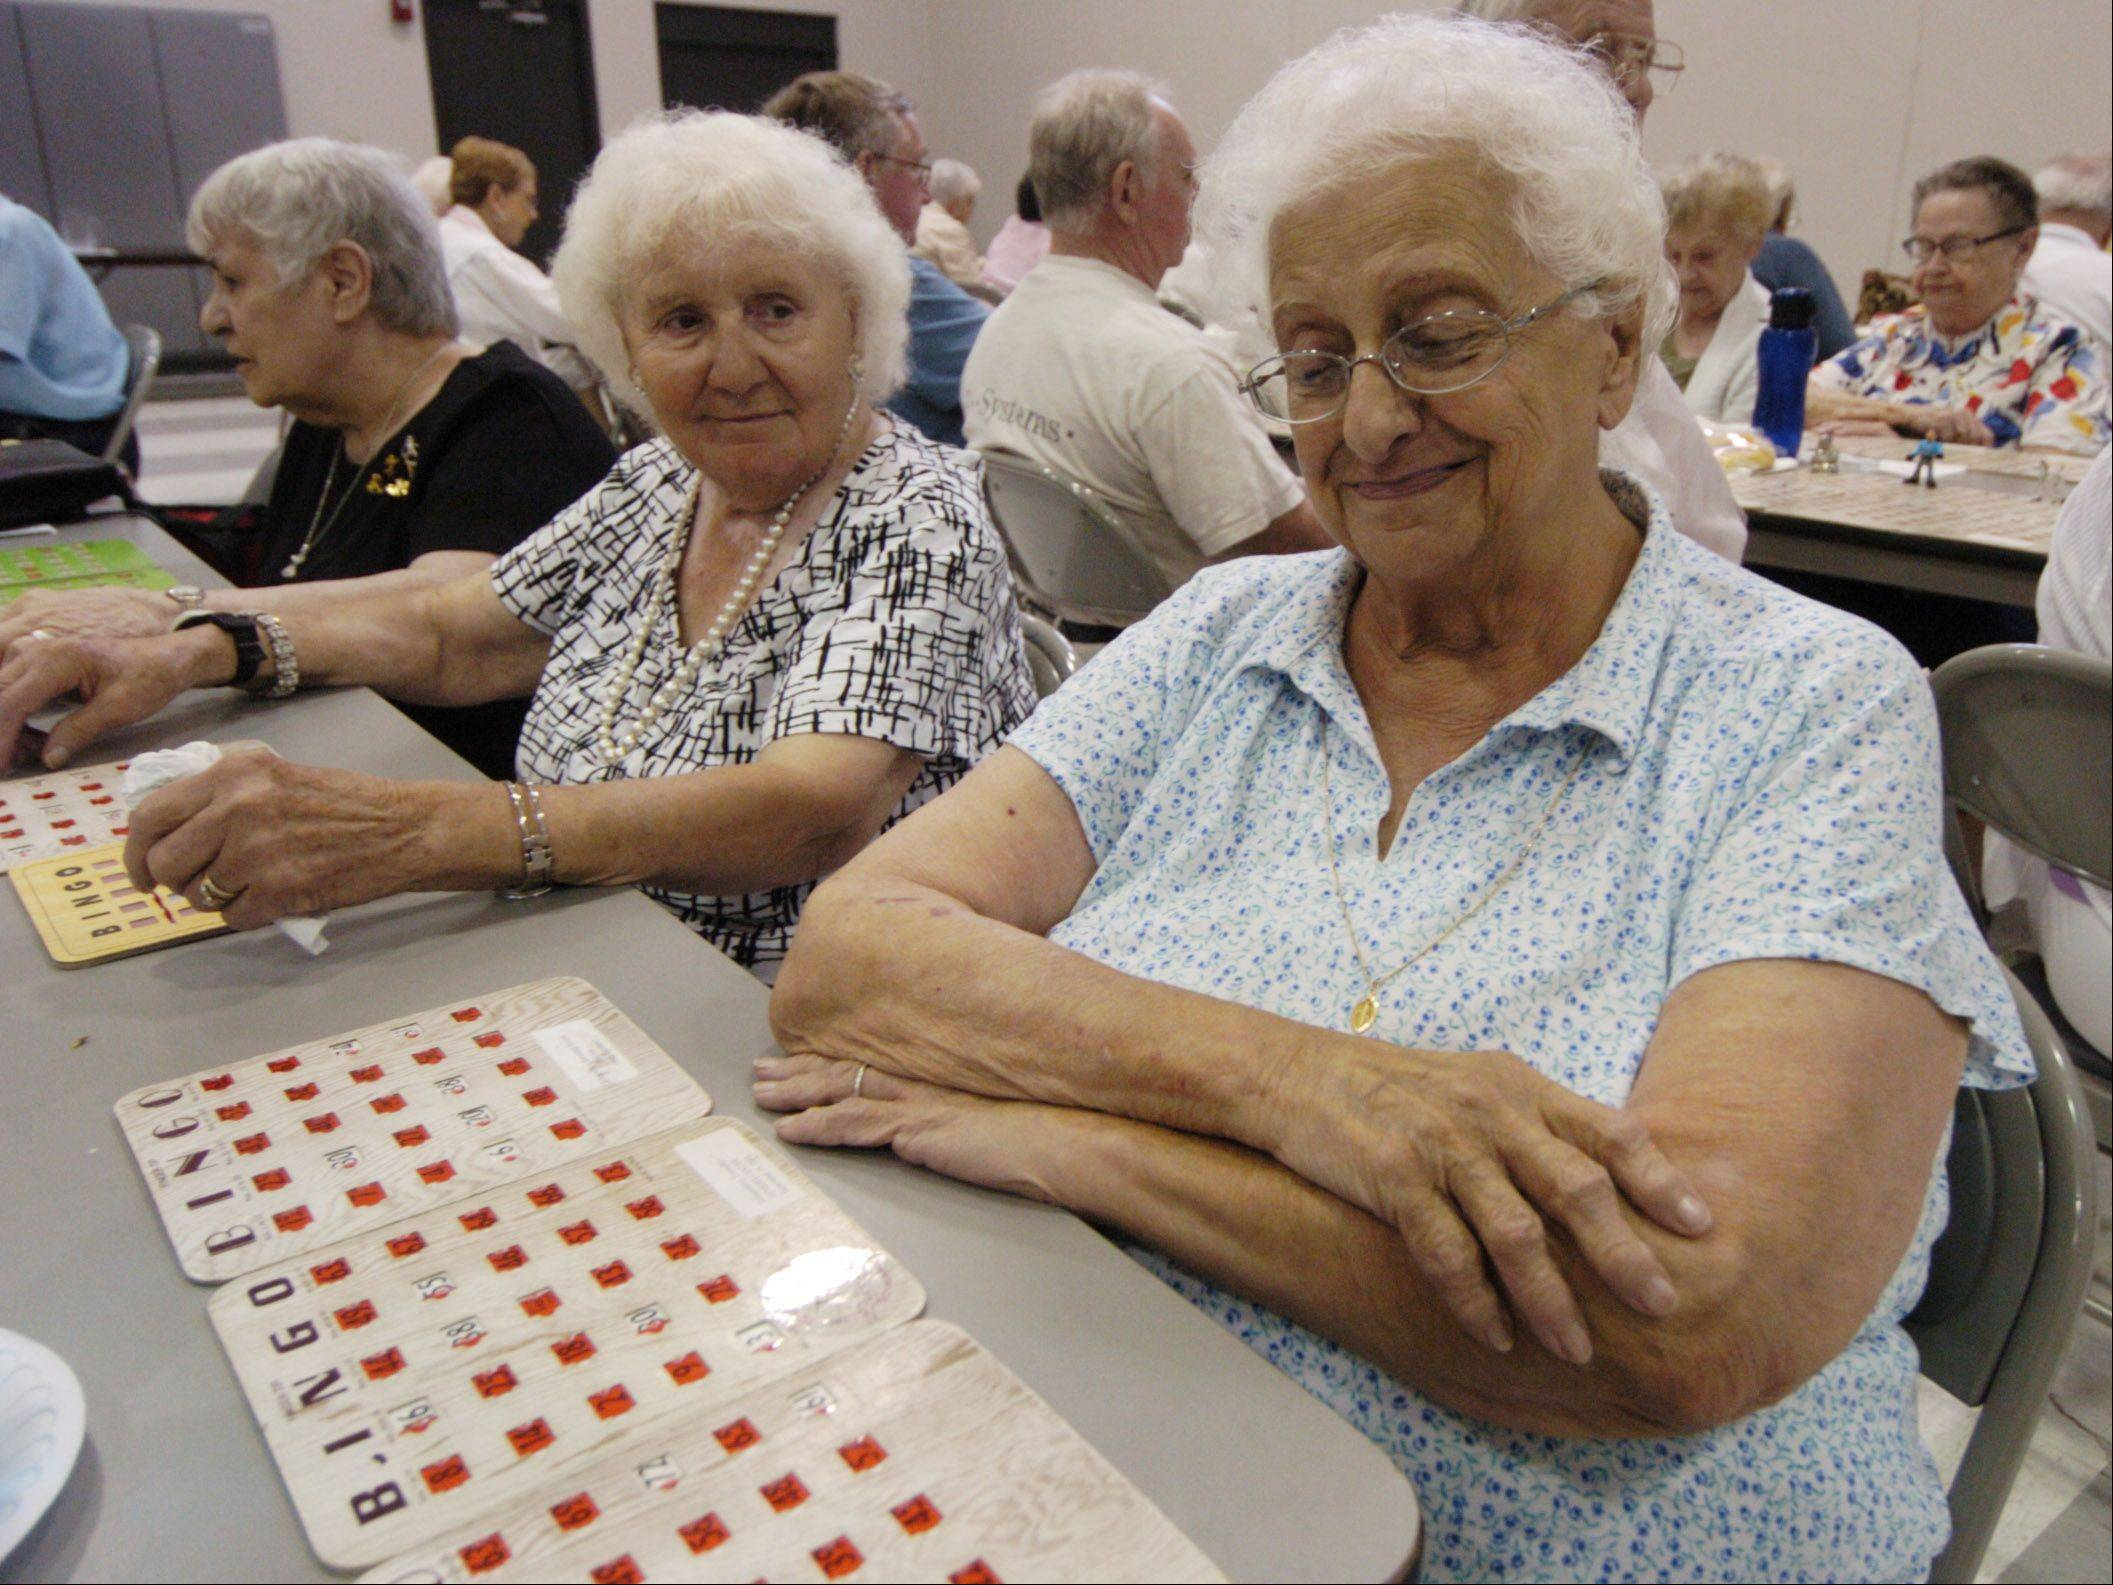 Lilian Petersen, right, of Hoffman Estates and Carmela Koblynski, of Schaumburg, are among the seniors playing bingo in the air-conditioned comfort of Schaumburg Township Hall Thursday.